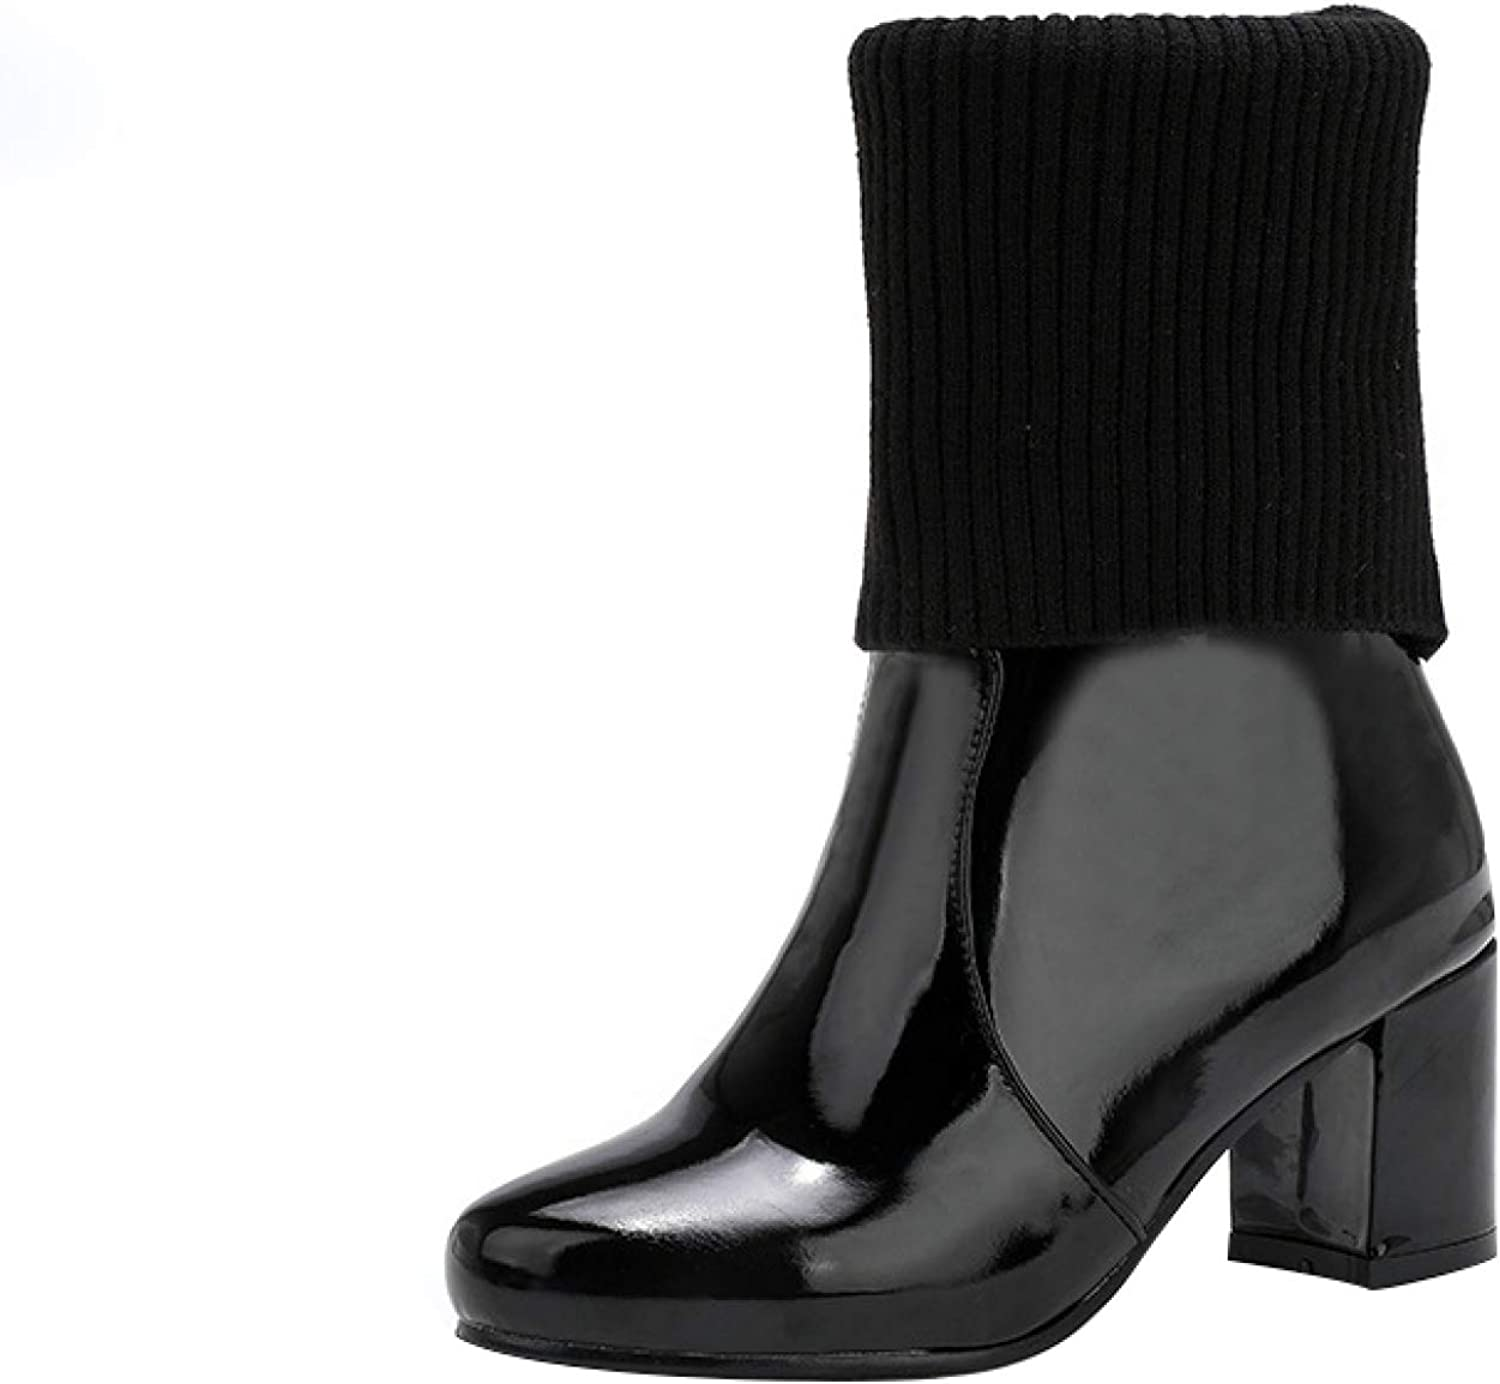 Patent Leather Booties for Women - Cl Outlet Beauty products ☆ Free Shipping Heeled Boots Women's Ankle